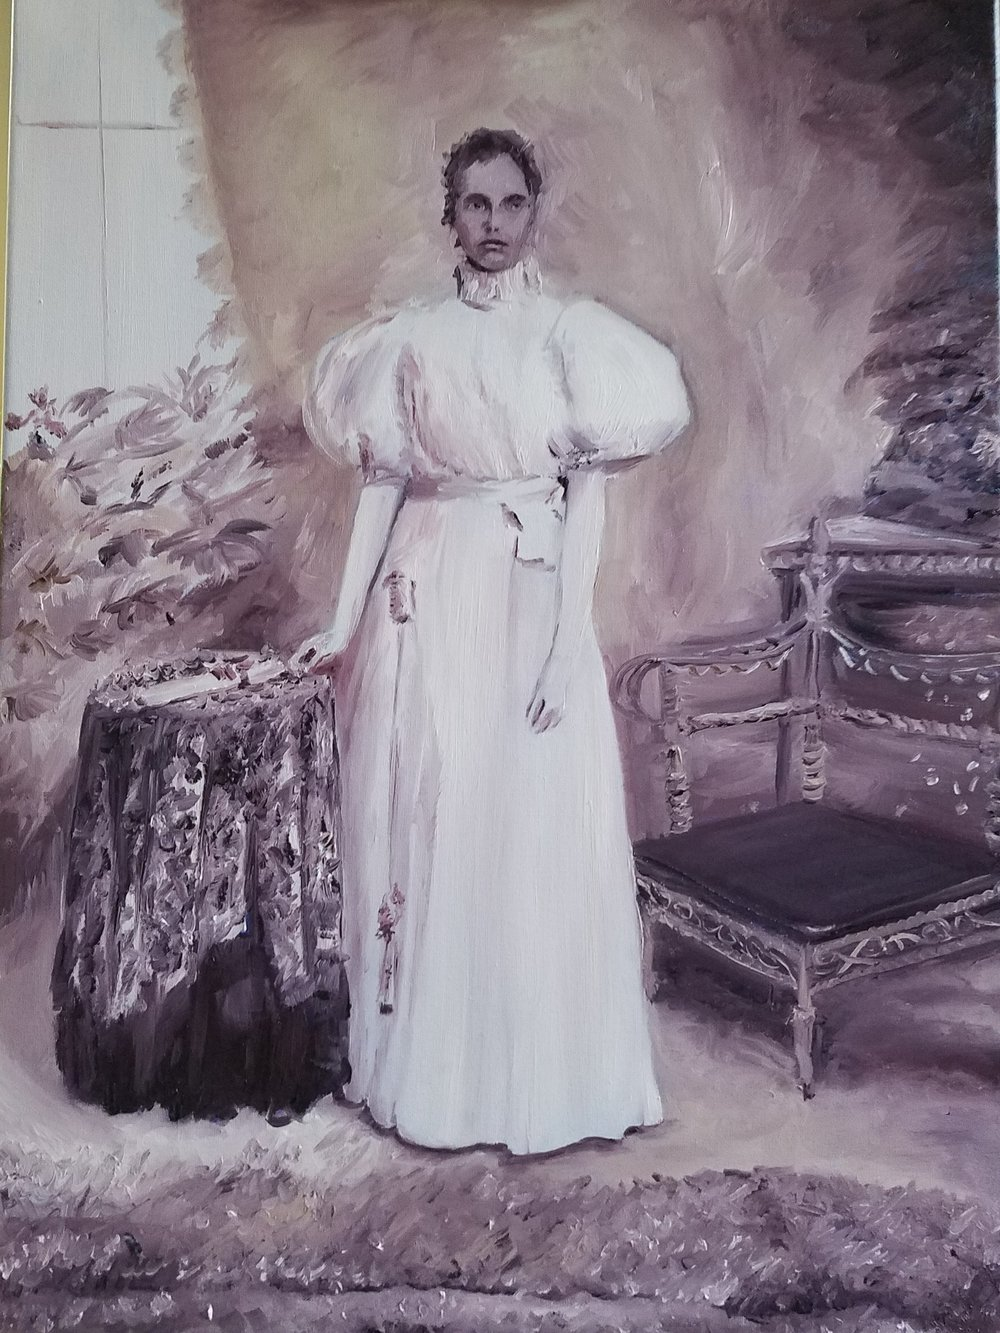 Victorian Grandmother; oil on linen; 2018